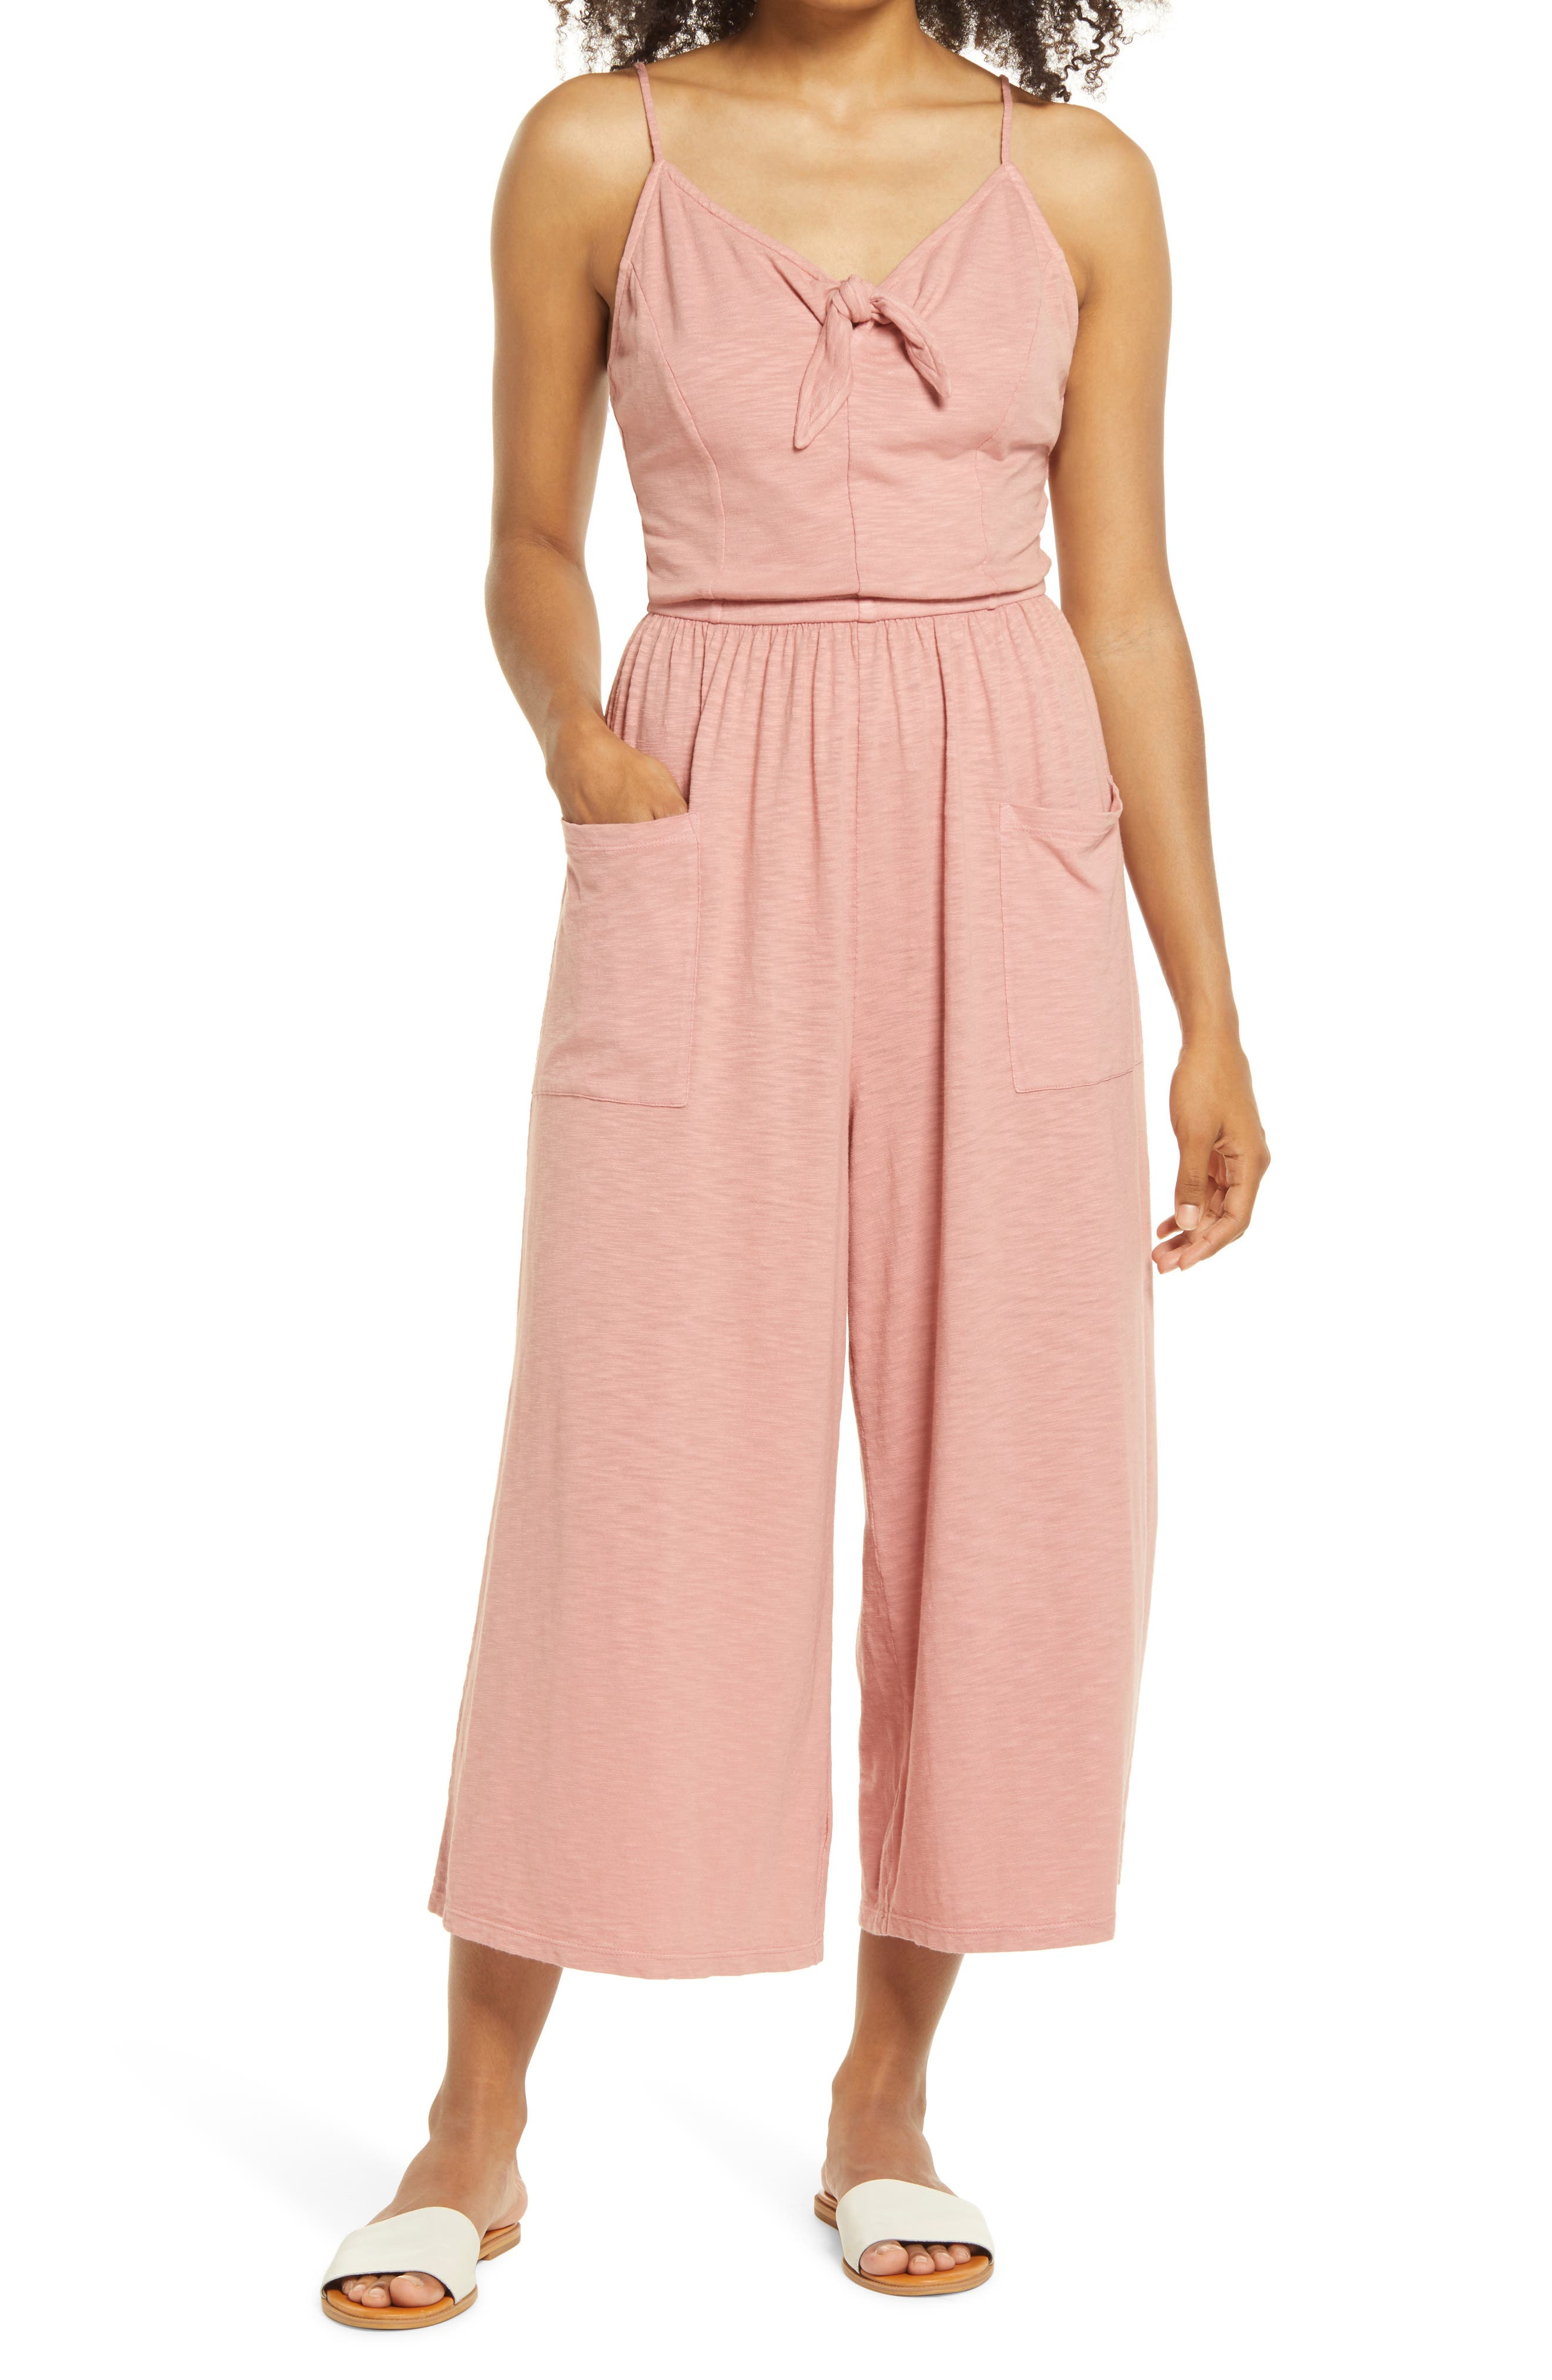 A comfy jumpsuit cut from supersoft slubbed jersey is styled with a cute neck tie, roomy pockets and a gathered waist for a sweet casual look. Style Name: Caslon Tie Neck Jumpsuit. Style Number: 5985718. Available in stores.